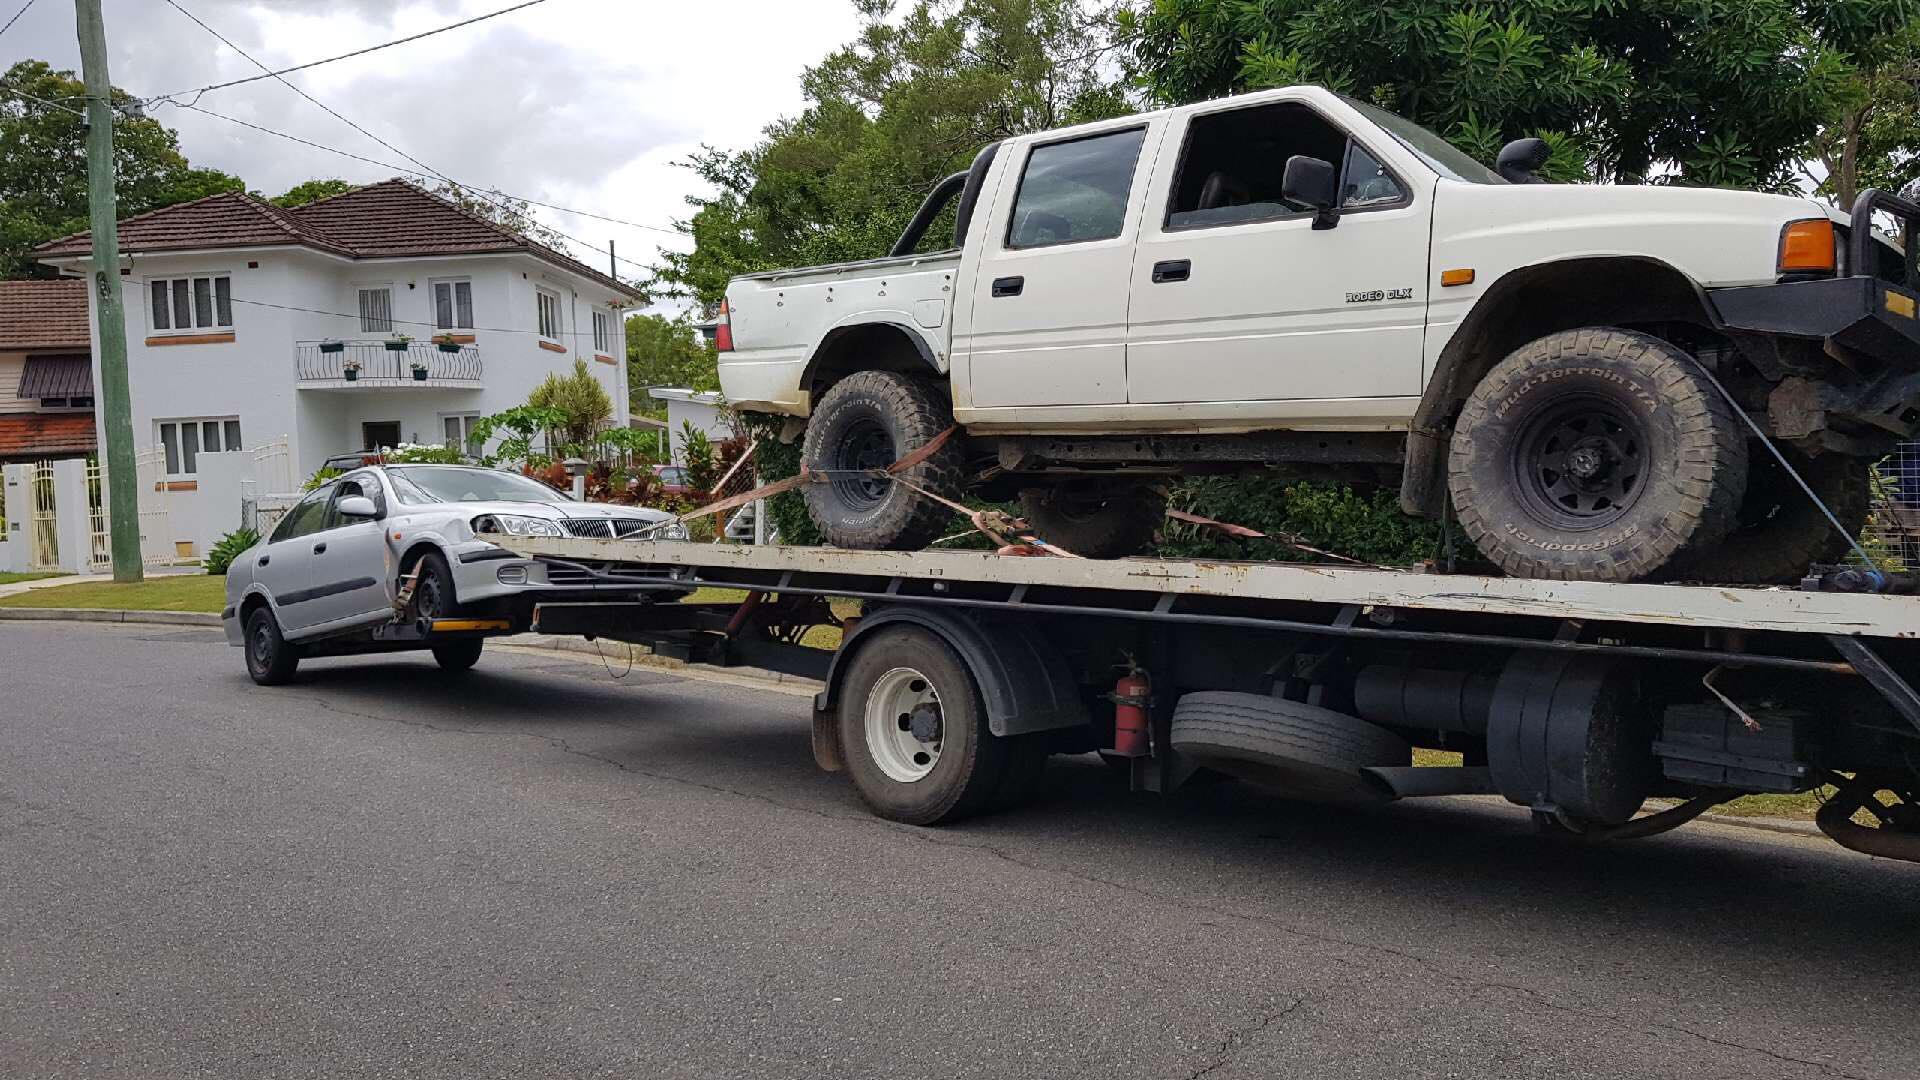 4wd tow Cash for Cars Sunshine coast Car removal Caloundra maroochydore noosa